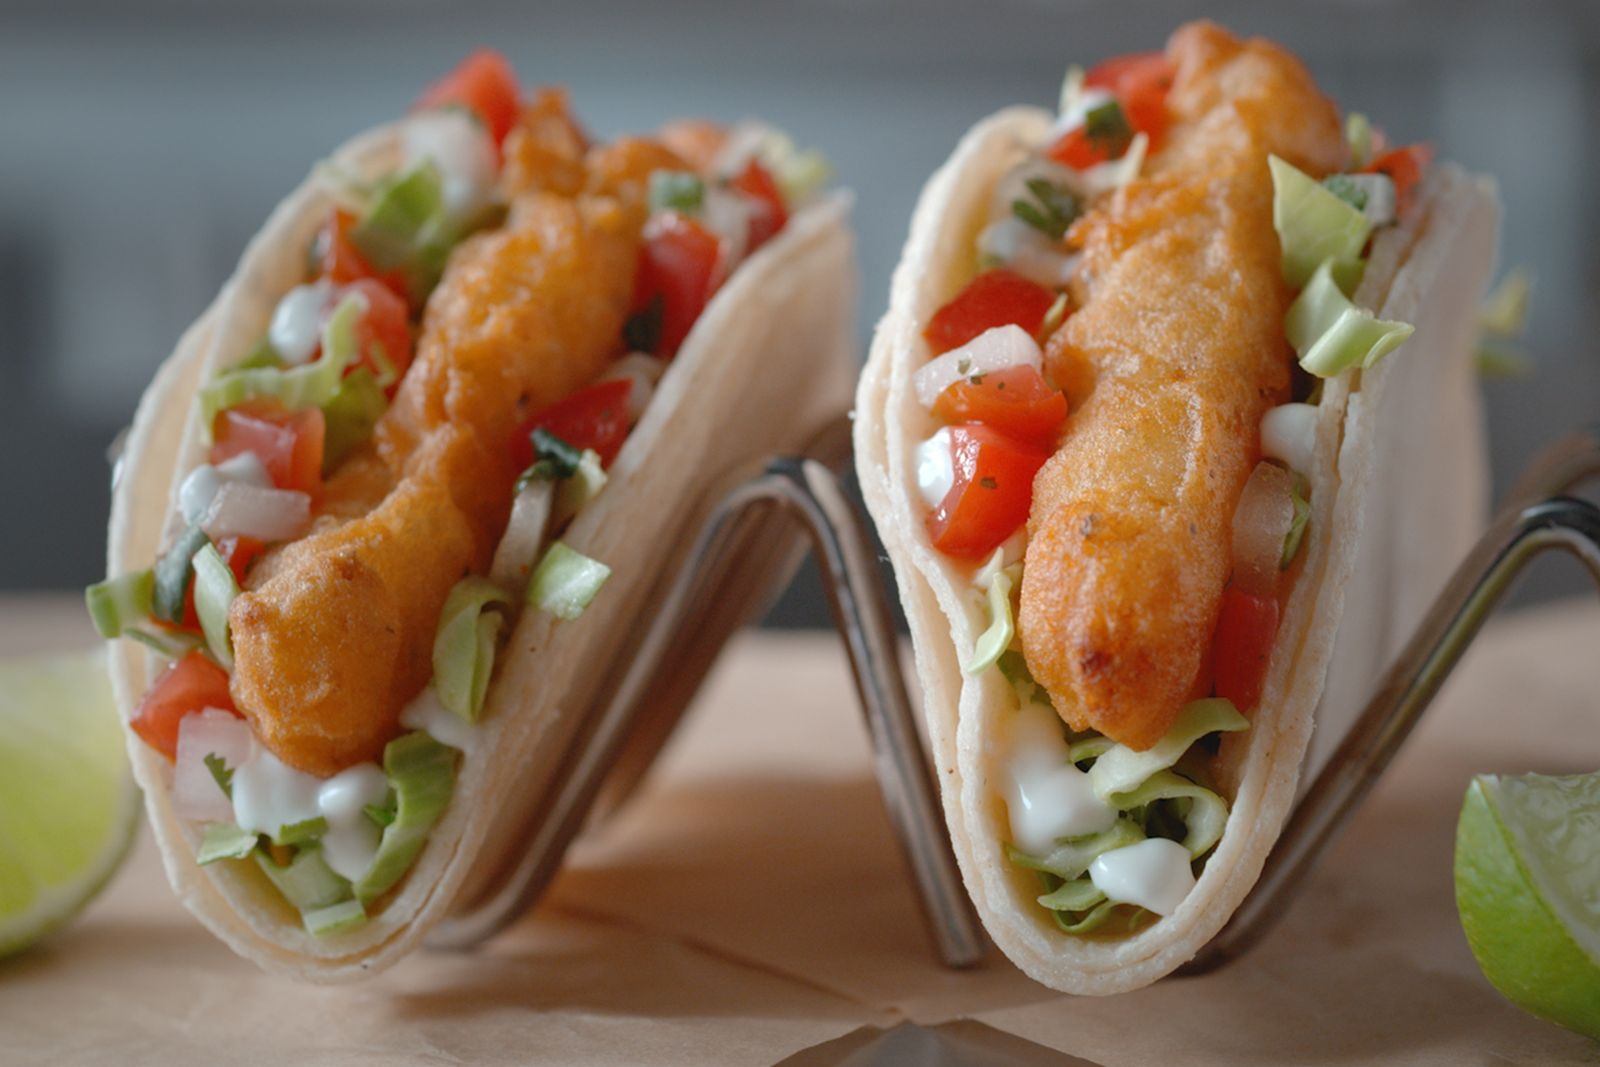 Del Taco Dives Back Into Seafood Season With 2 for $4 Beer Battered Fish Tacos and the Return of Jumbo Shrimp